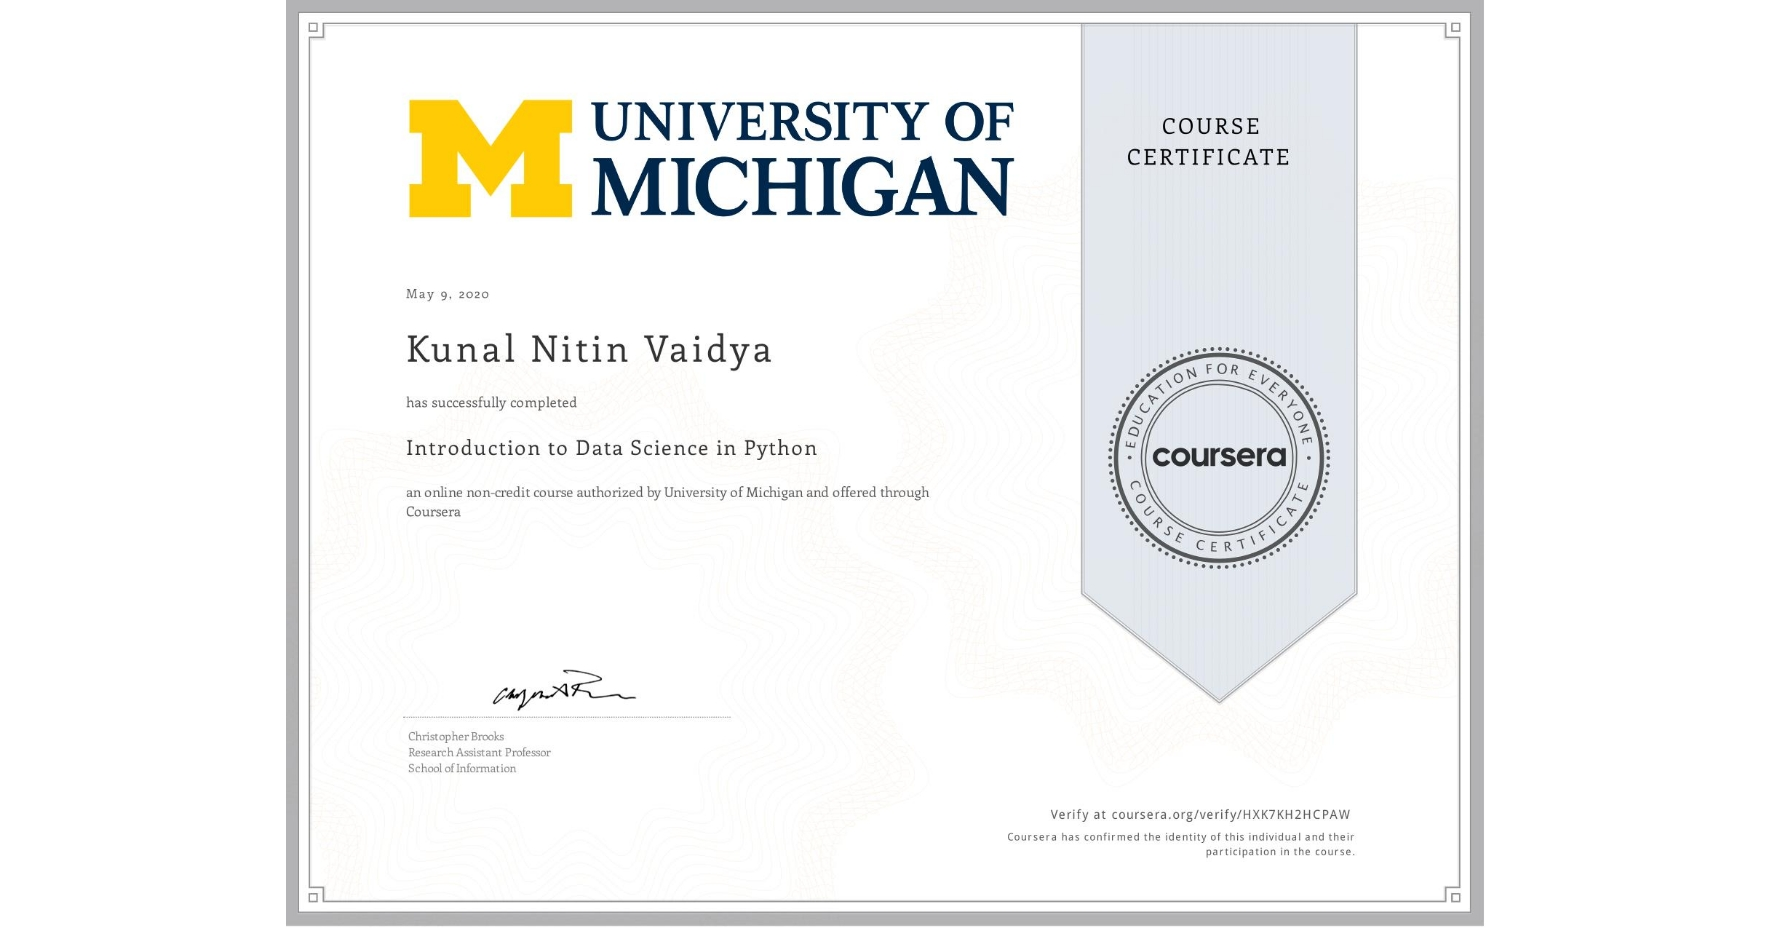 View certificate for Kunal Nitin Vaidya, Introduction to Data Science in Python, an online non-credit course authorized by University of Michigan and offered through Coursera